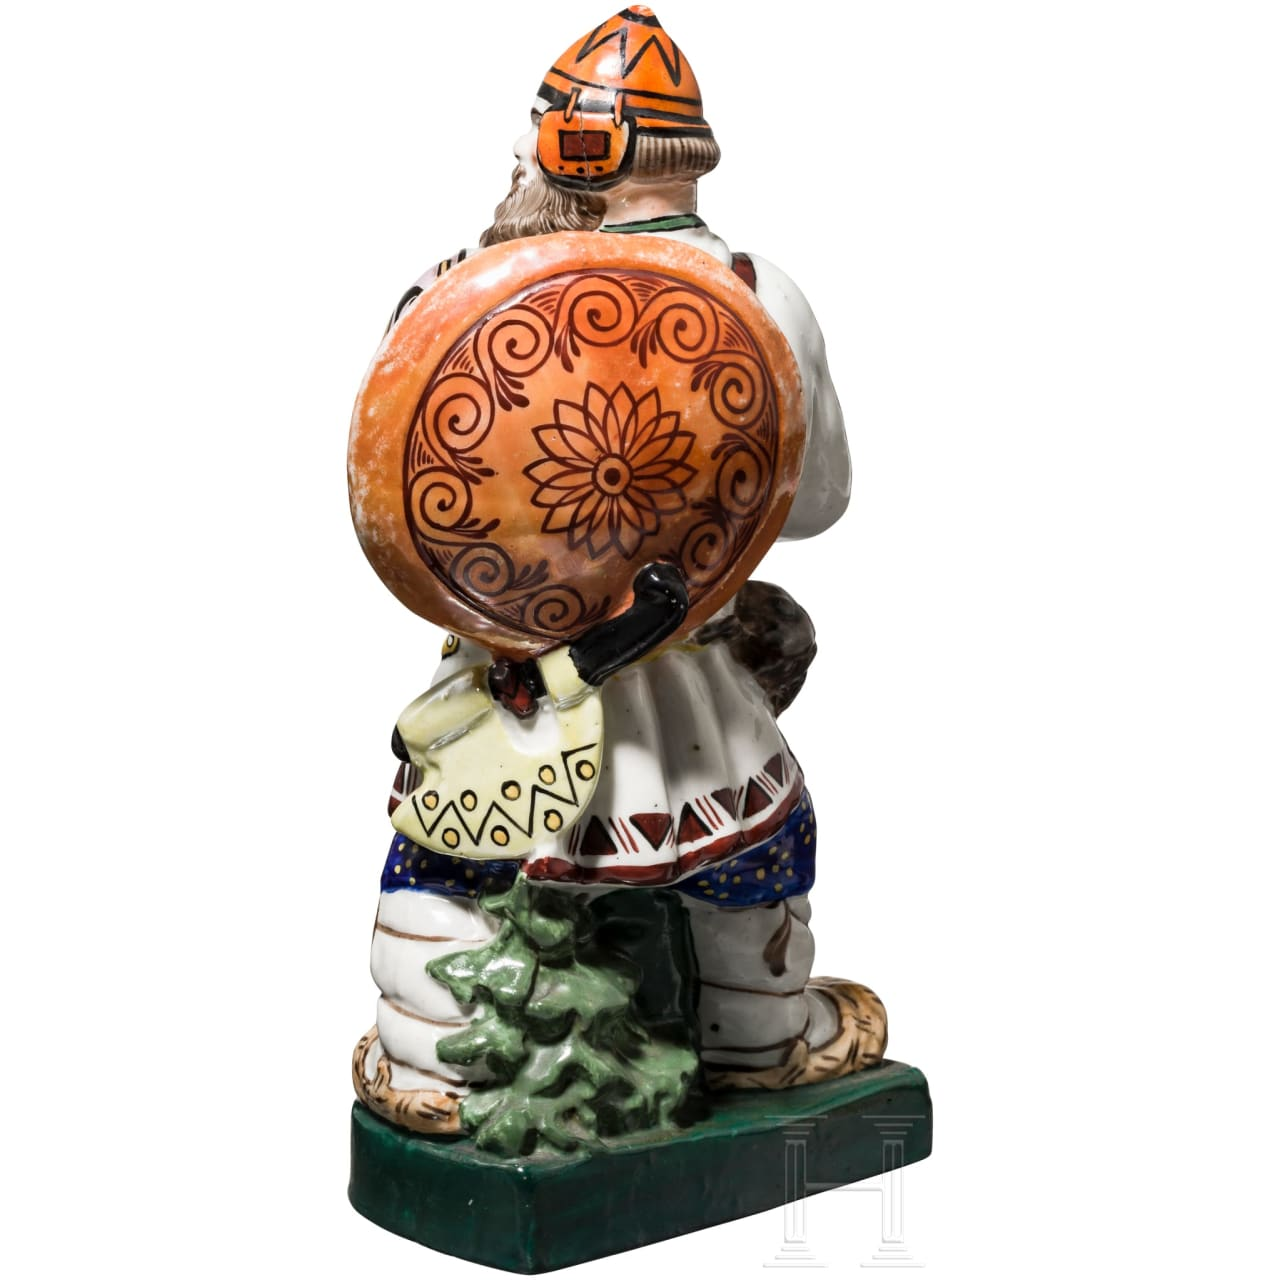 A hand-painted porcelain figurine of a bogatyr in neo-Russian style, circa 1915 – 1925